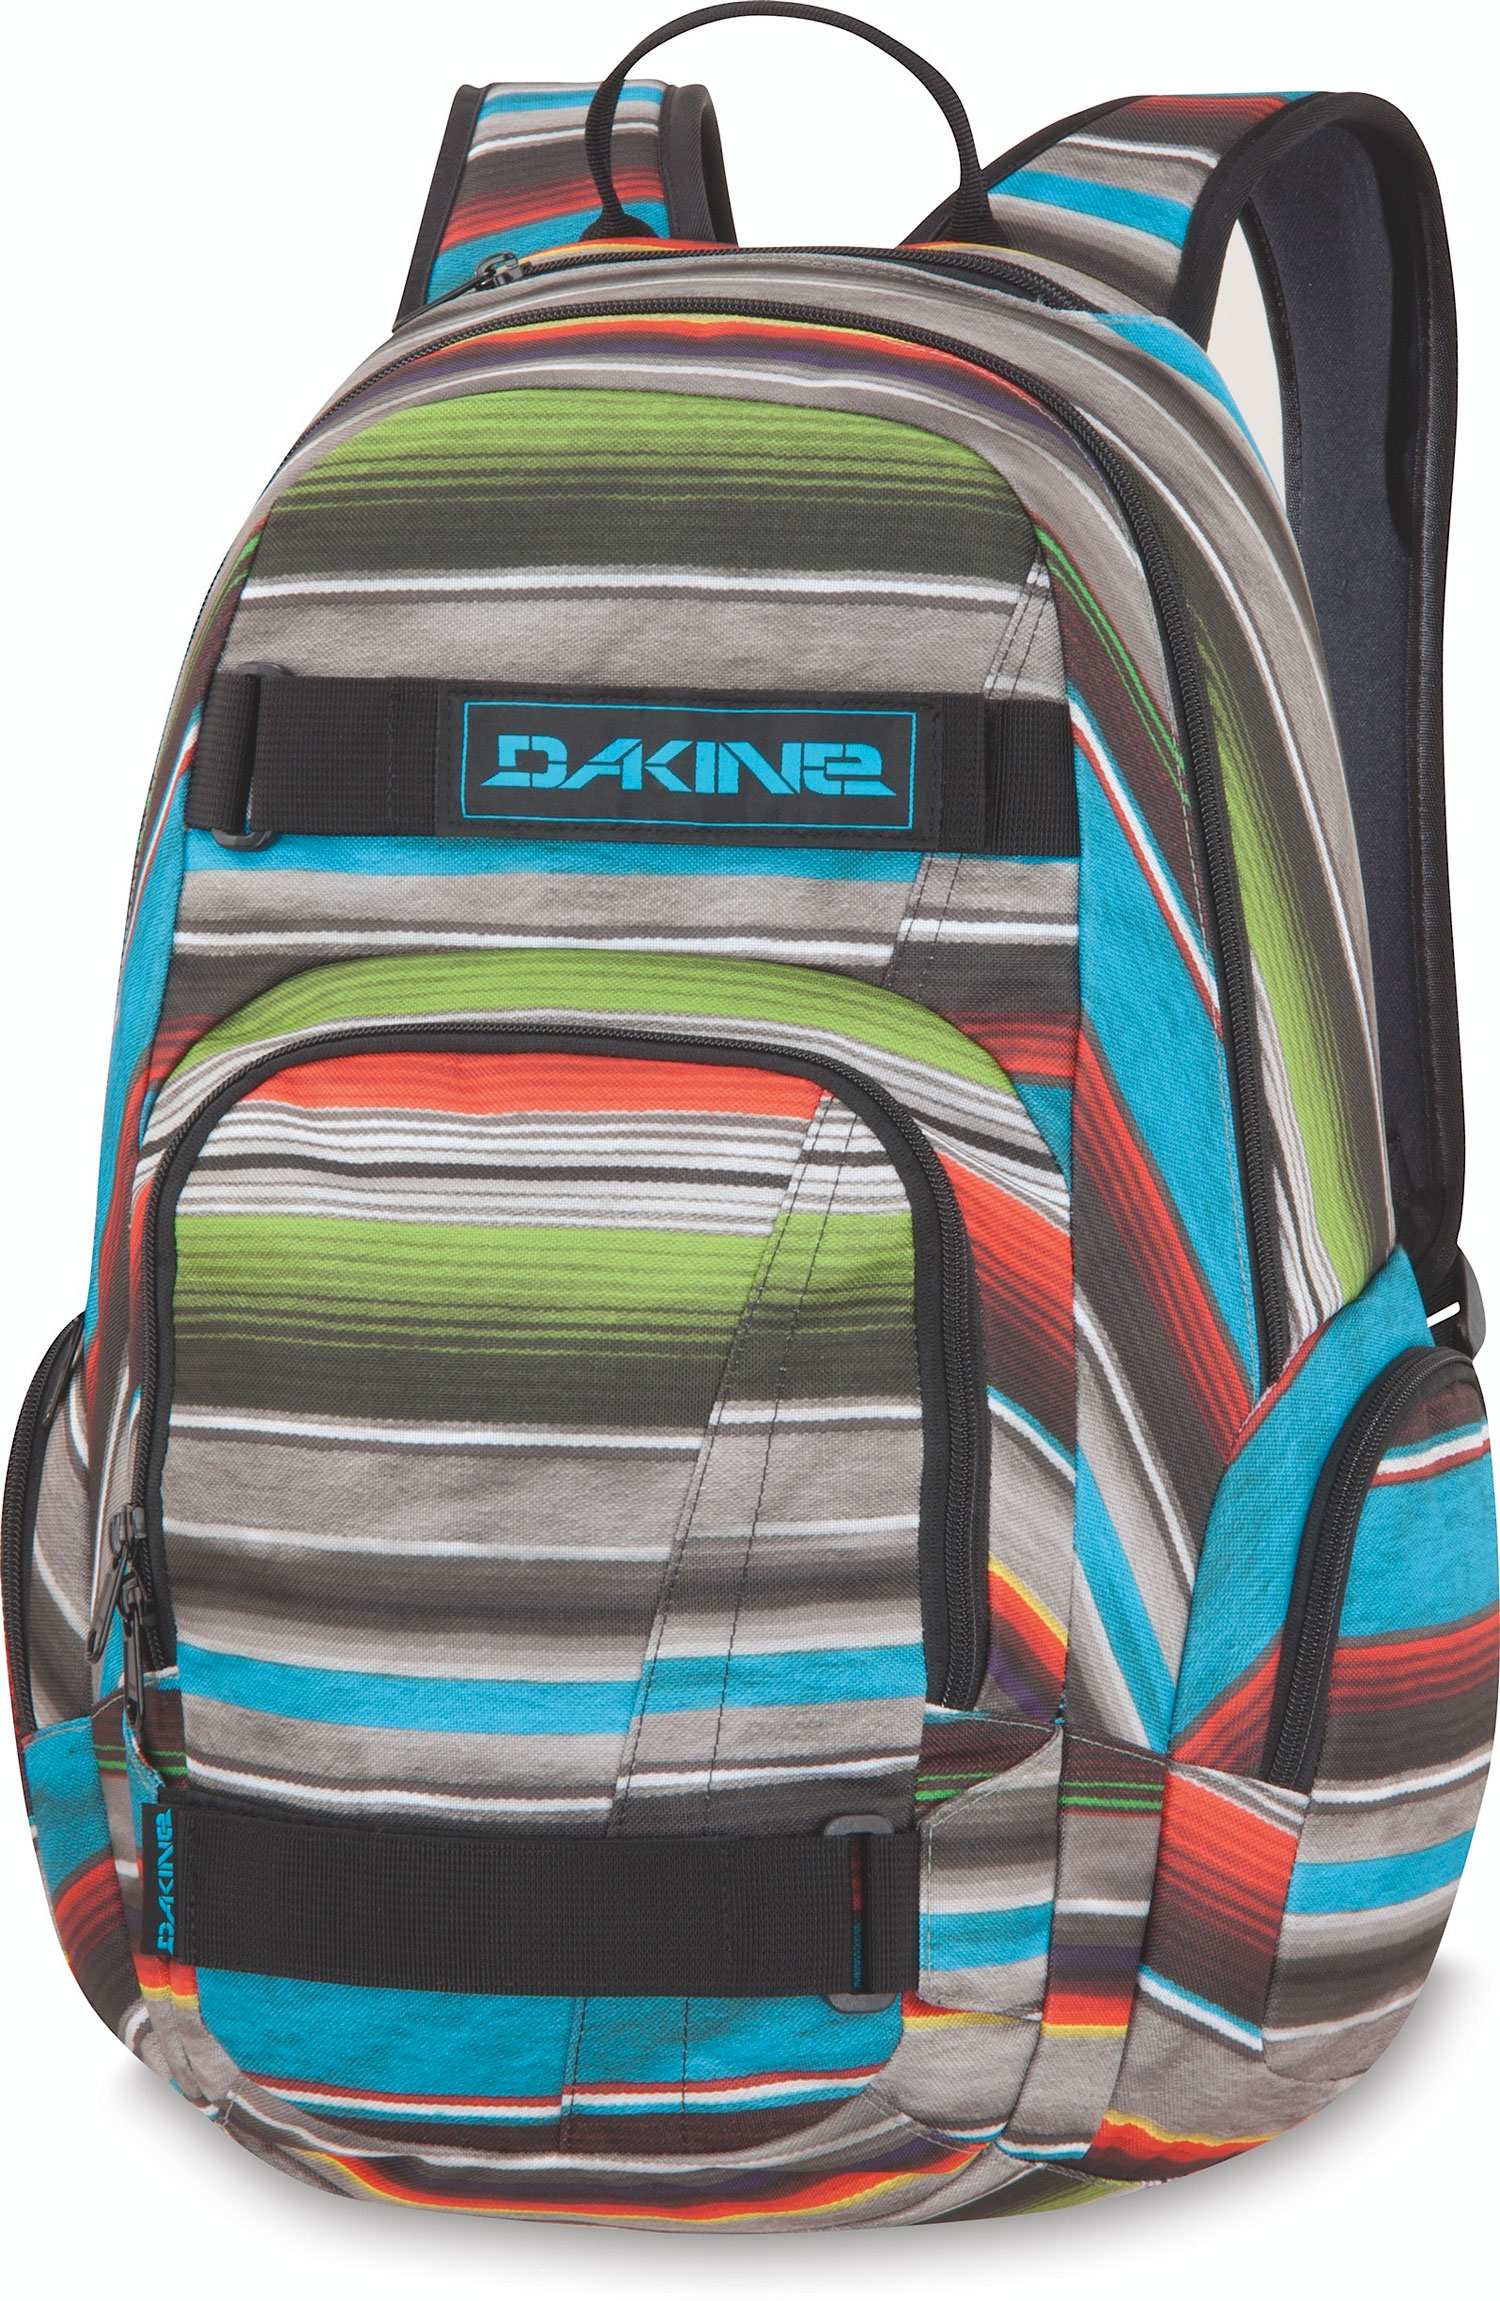 Surf Head to campus with your board in tow with the Atlas Pack.Key Features of the Dakine Atlas 25L Backpack: Skate carry straps. Fleece-lined sunglass pocket. Zippered side pockets for extra storage. Large main compartment and front organizer compartment. Made of 600D polyester. Volume: 1500 cubic inches. Measurements: Bottom Width: 12 in Middle Width: 12 in Top Width: 10 in Depth: 5 in Height: 20 in Strap Length: 36 in Strap Drop: 18 in Handle Length: 8 in Handle Drop: 3 in Weight: 1 lb 8 oz - $45.00